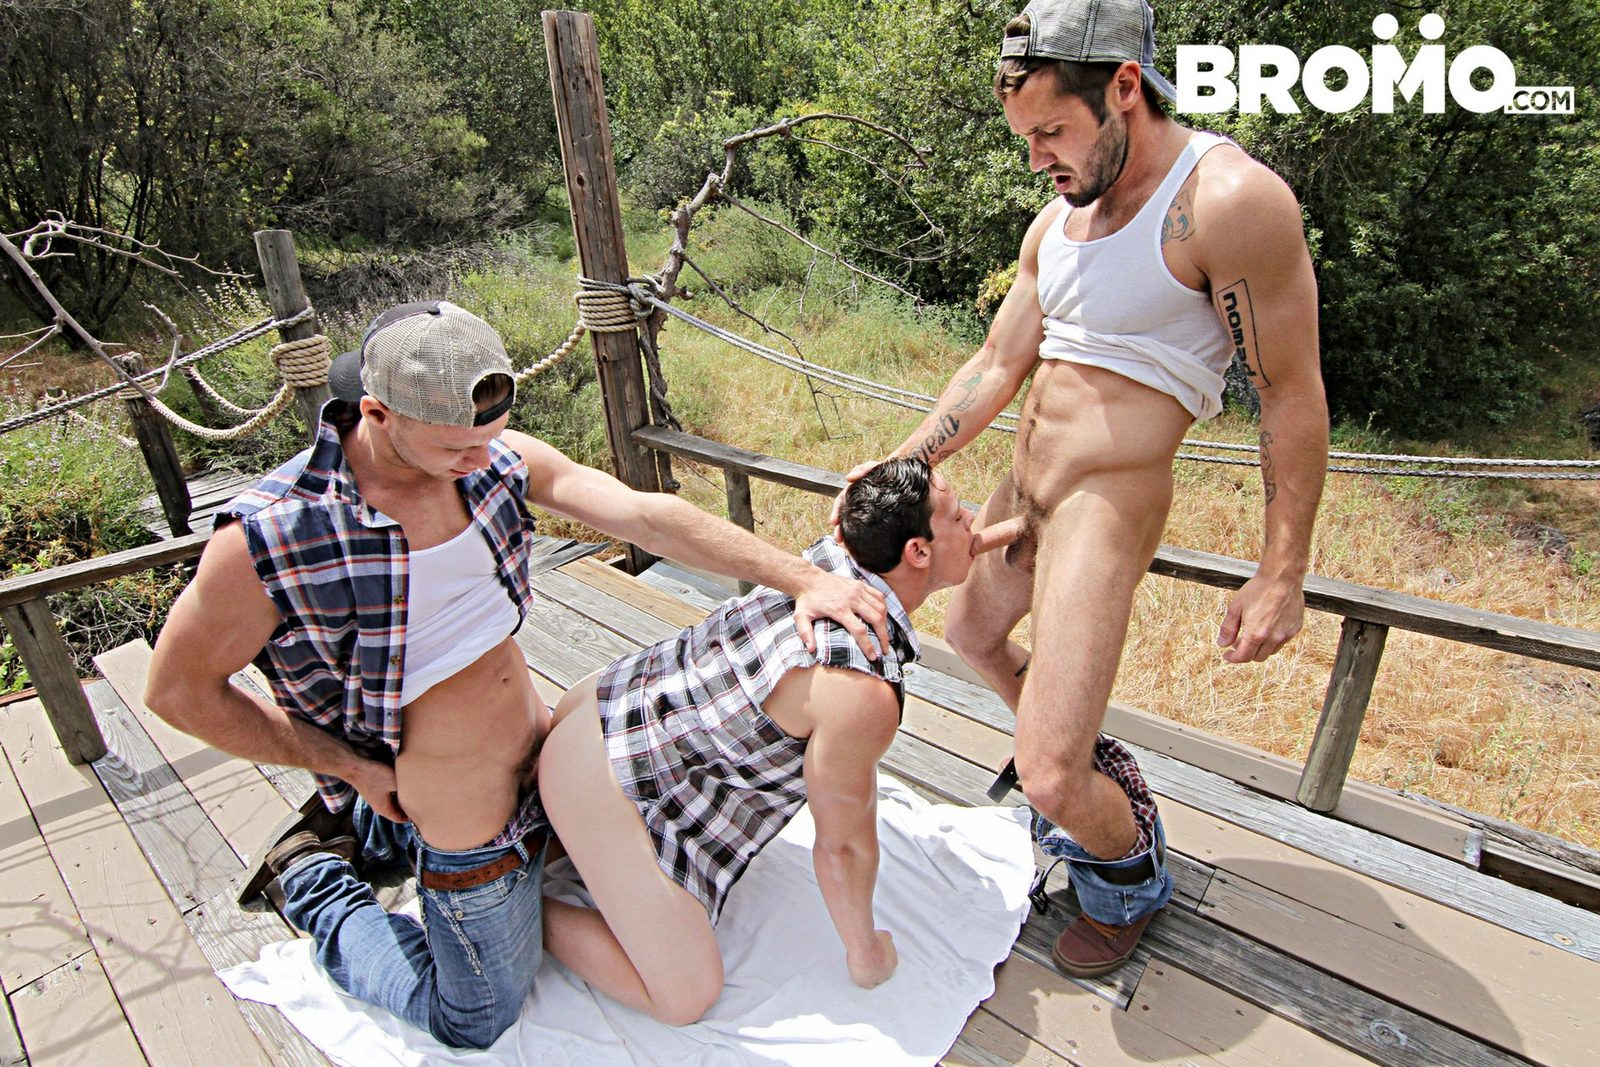 Jeff Powers Brandon Evans fuck Tobias gay hot daddy dude men porn Rednecks